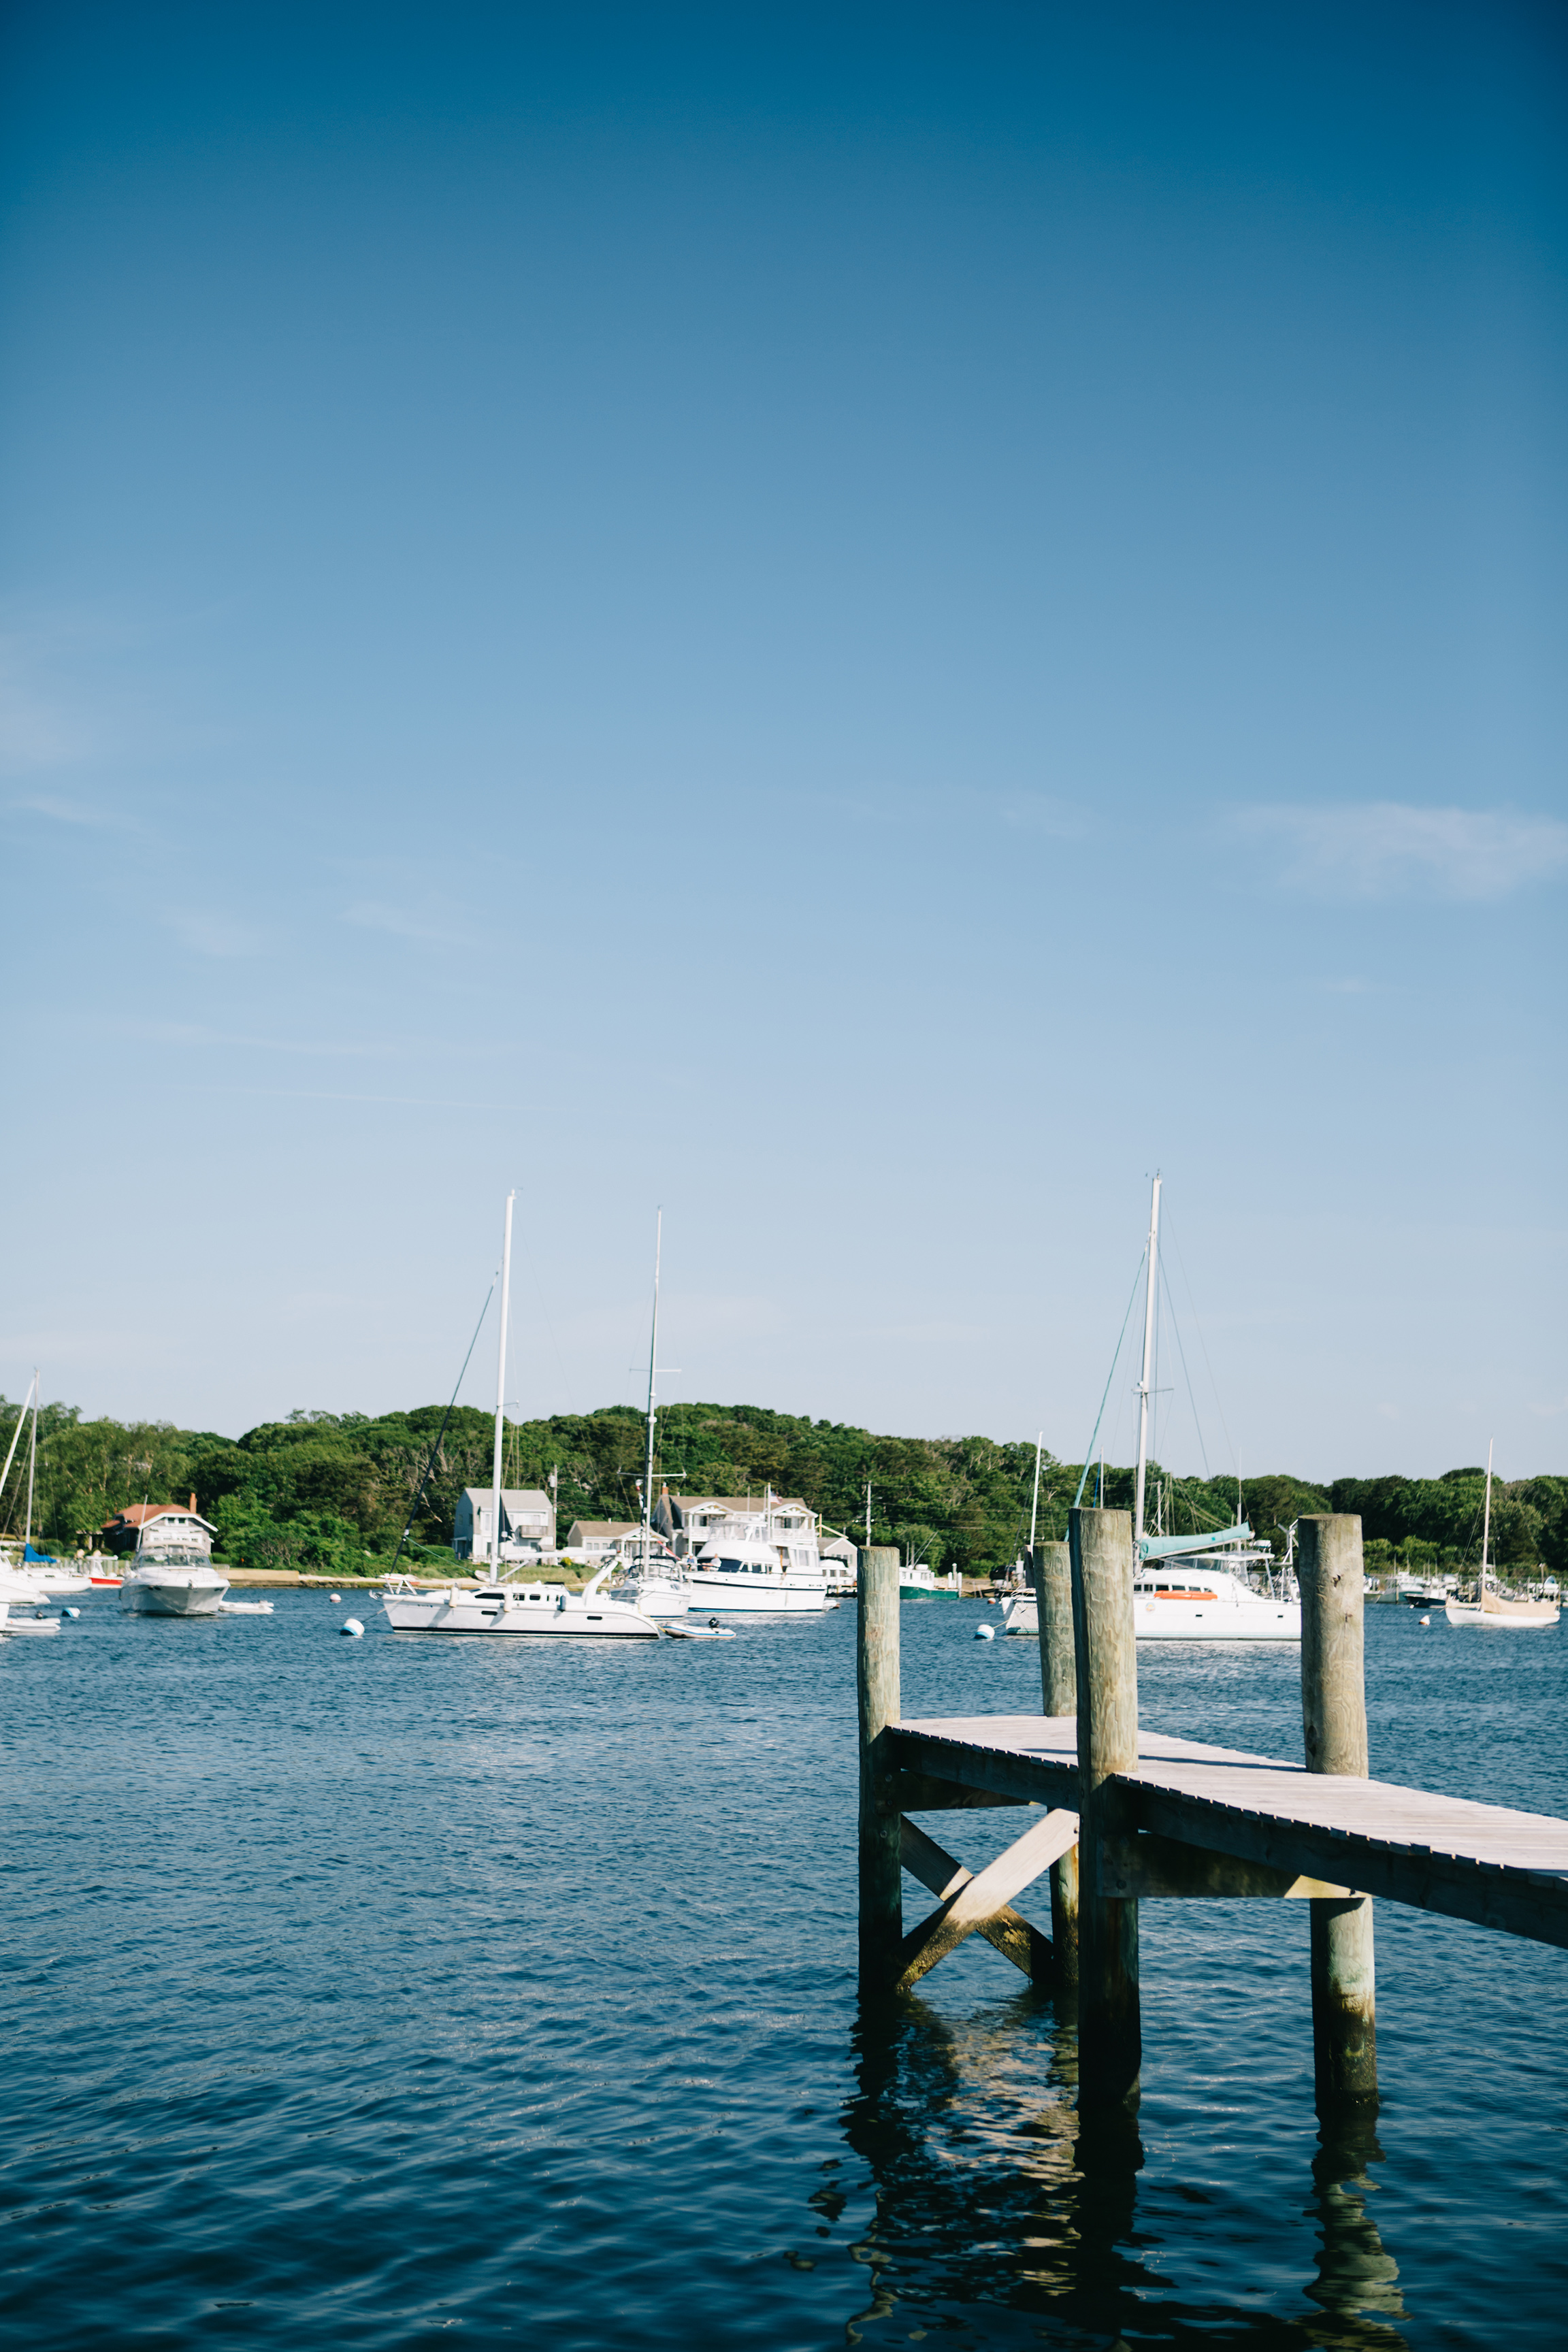 SummerCamp_Hotel_MarthasVineyard_travel_NewEngland-029.jpg